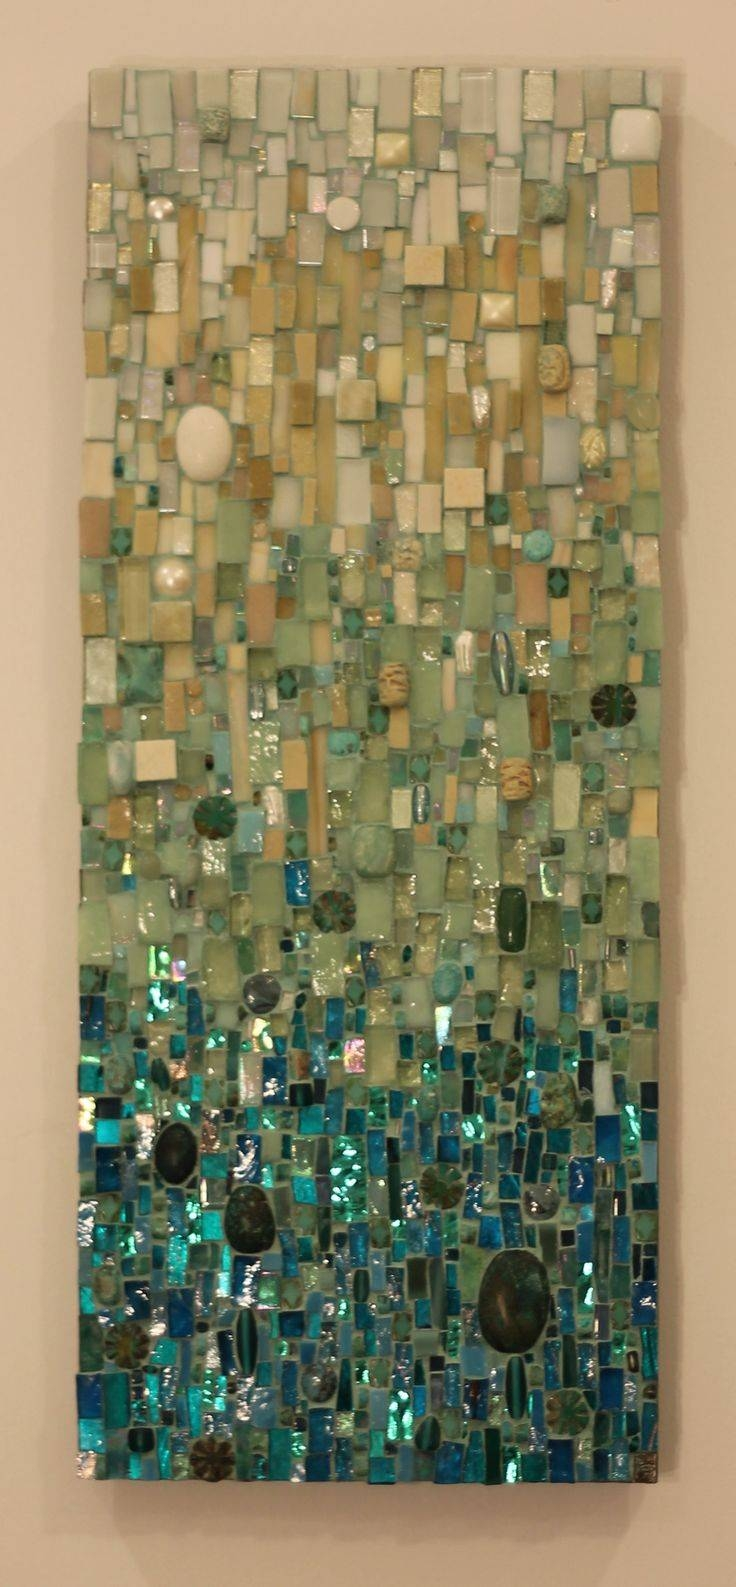 25+ Unique Mosaic Art Ideas On Pinterest | Cd Mosaic, Mirror Wall Throughout Most Popular Mosaic Wall Art Kits (View 1 of 20)